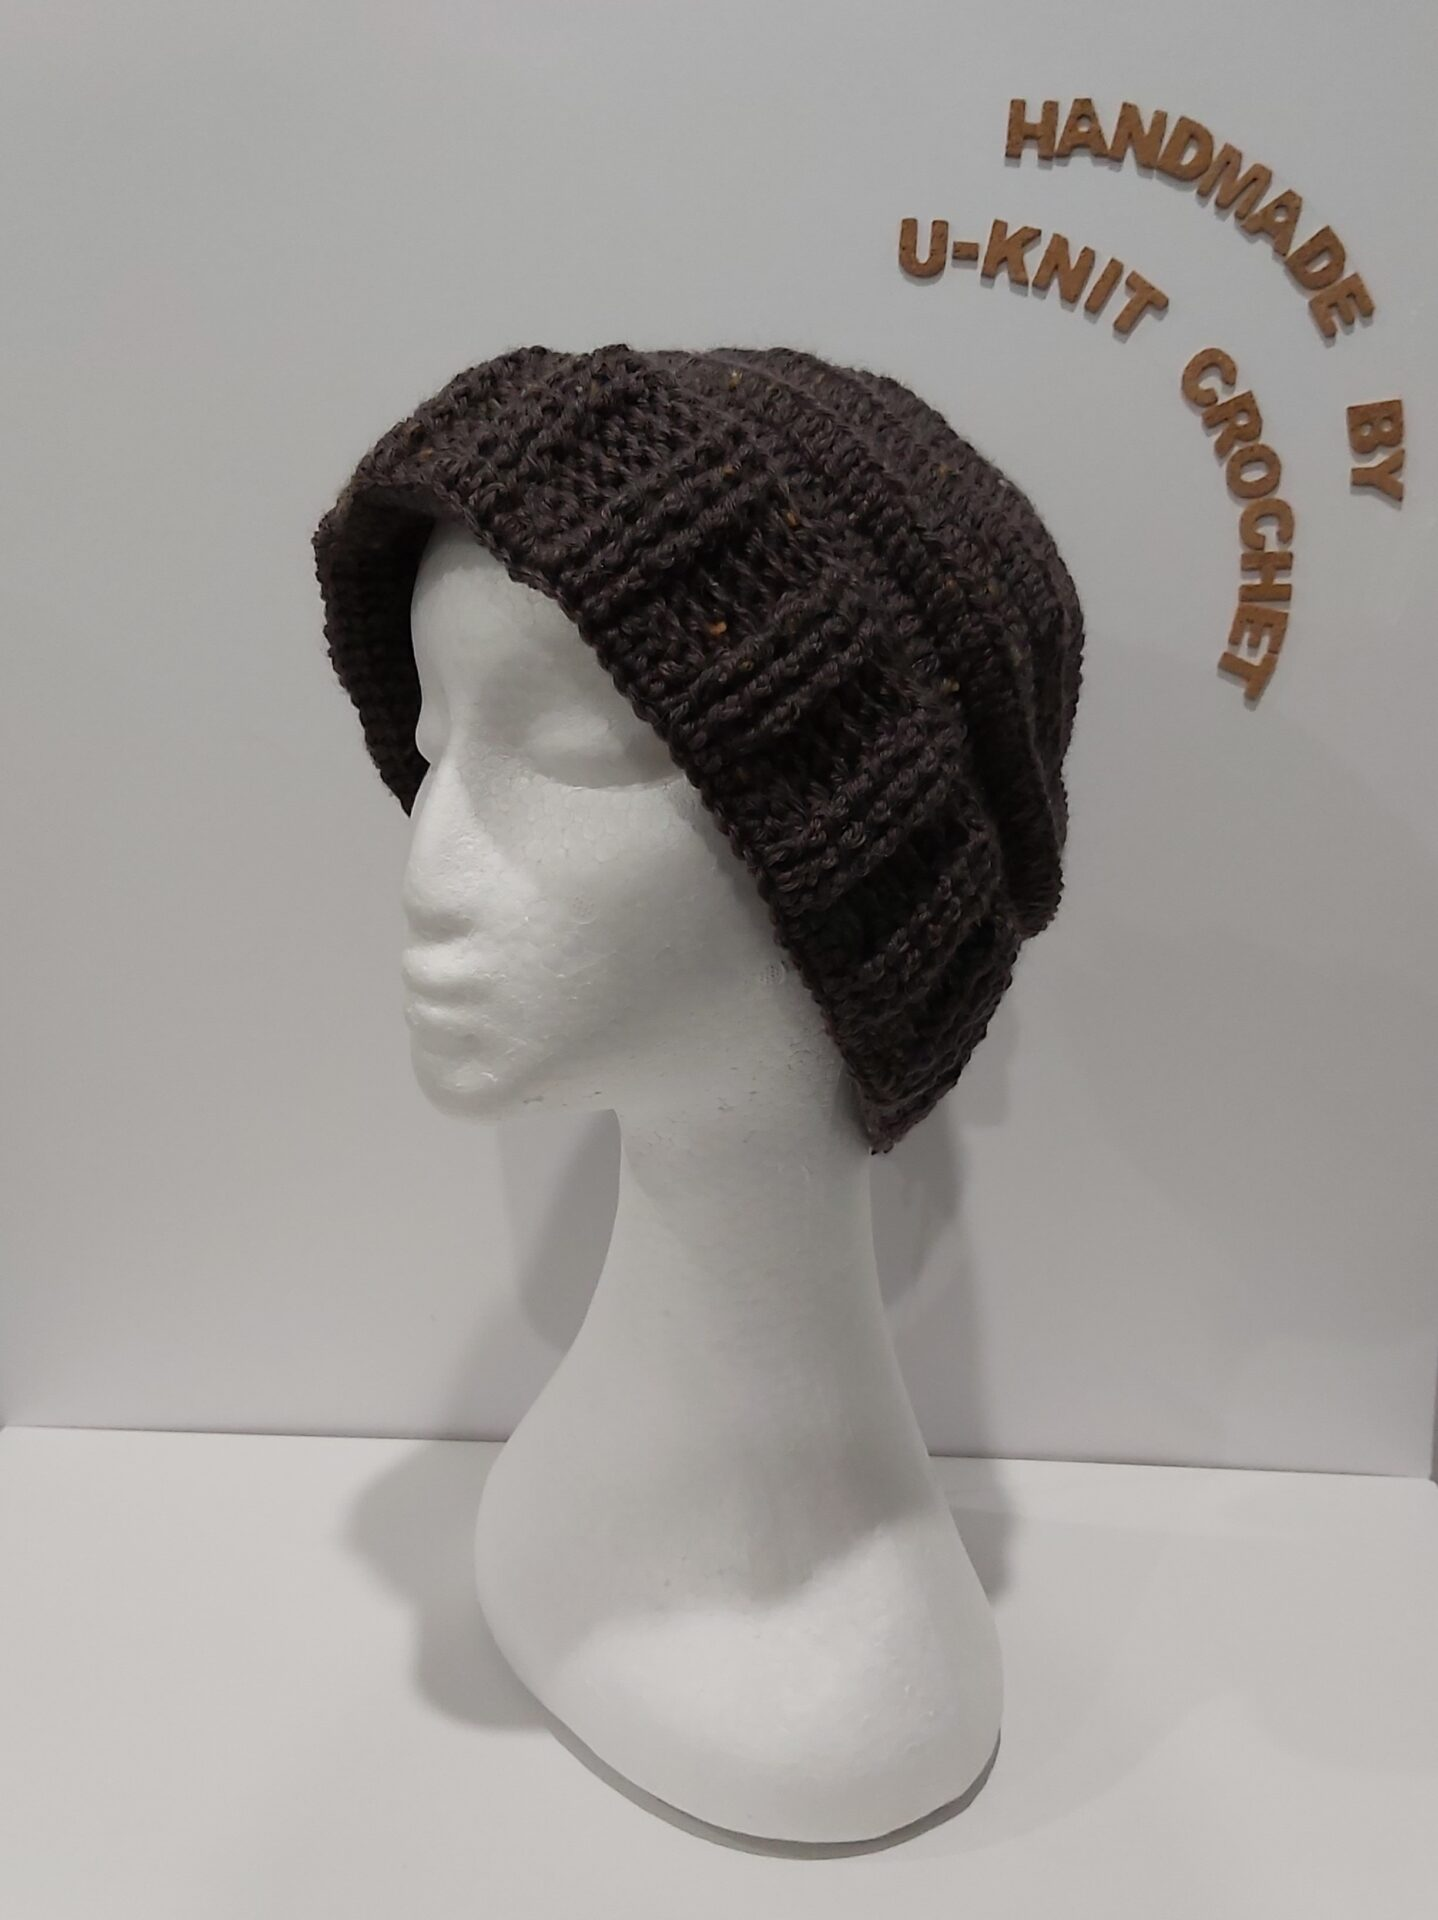 Walnut Beanie Handmade By U-Knit Crochet